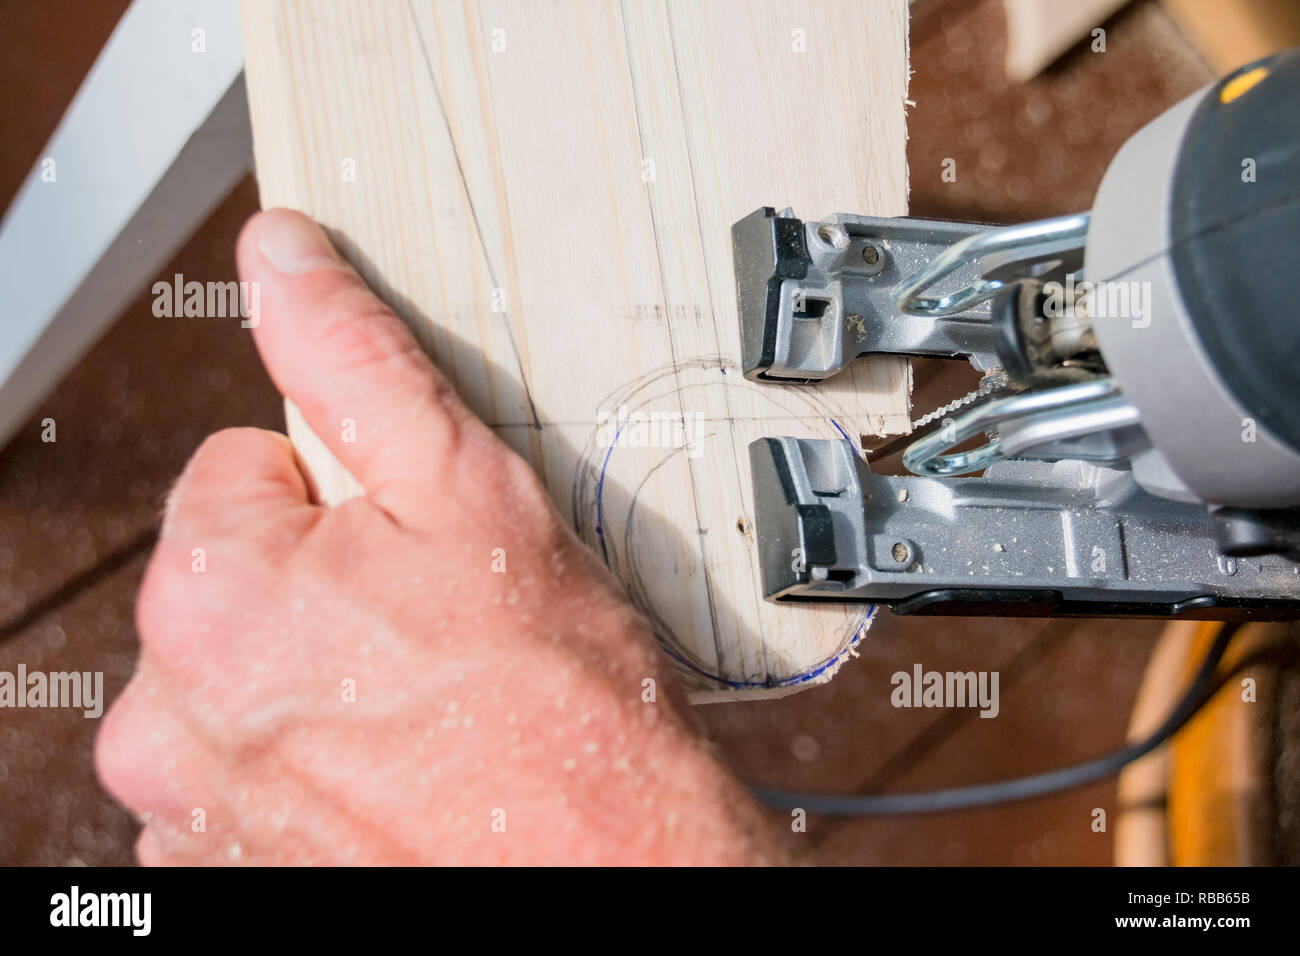 young man carpenter builder working with electric jigsaw and wood.hobby concept.DIY acronym cut out in OSB panel with electric jigsaw.Woodworker cutting a piece of wood - Stock Image